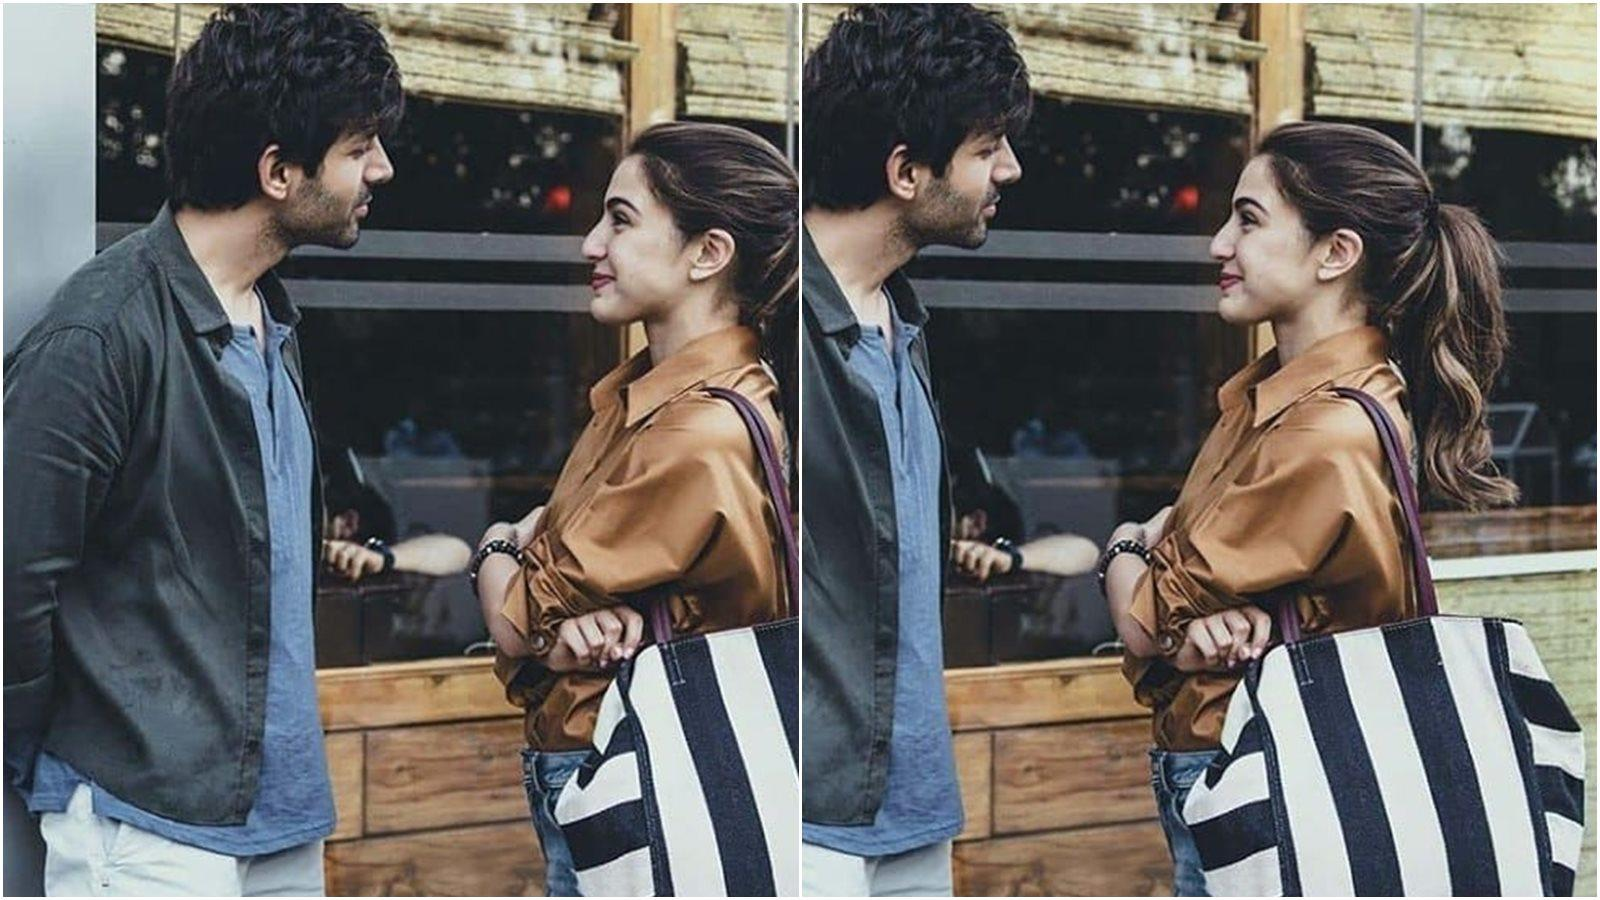 Sara Ali Khan and Kartik Aaryan can't take their eyes off each other in viral pic, fans want them to get back together